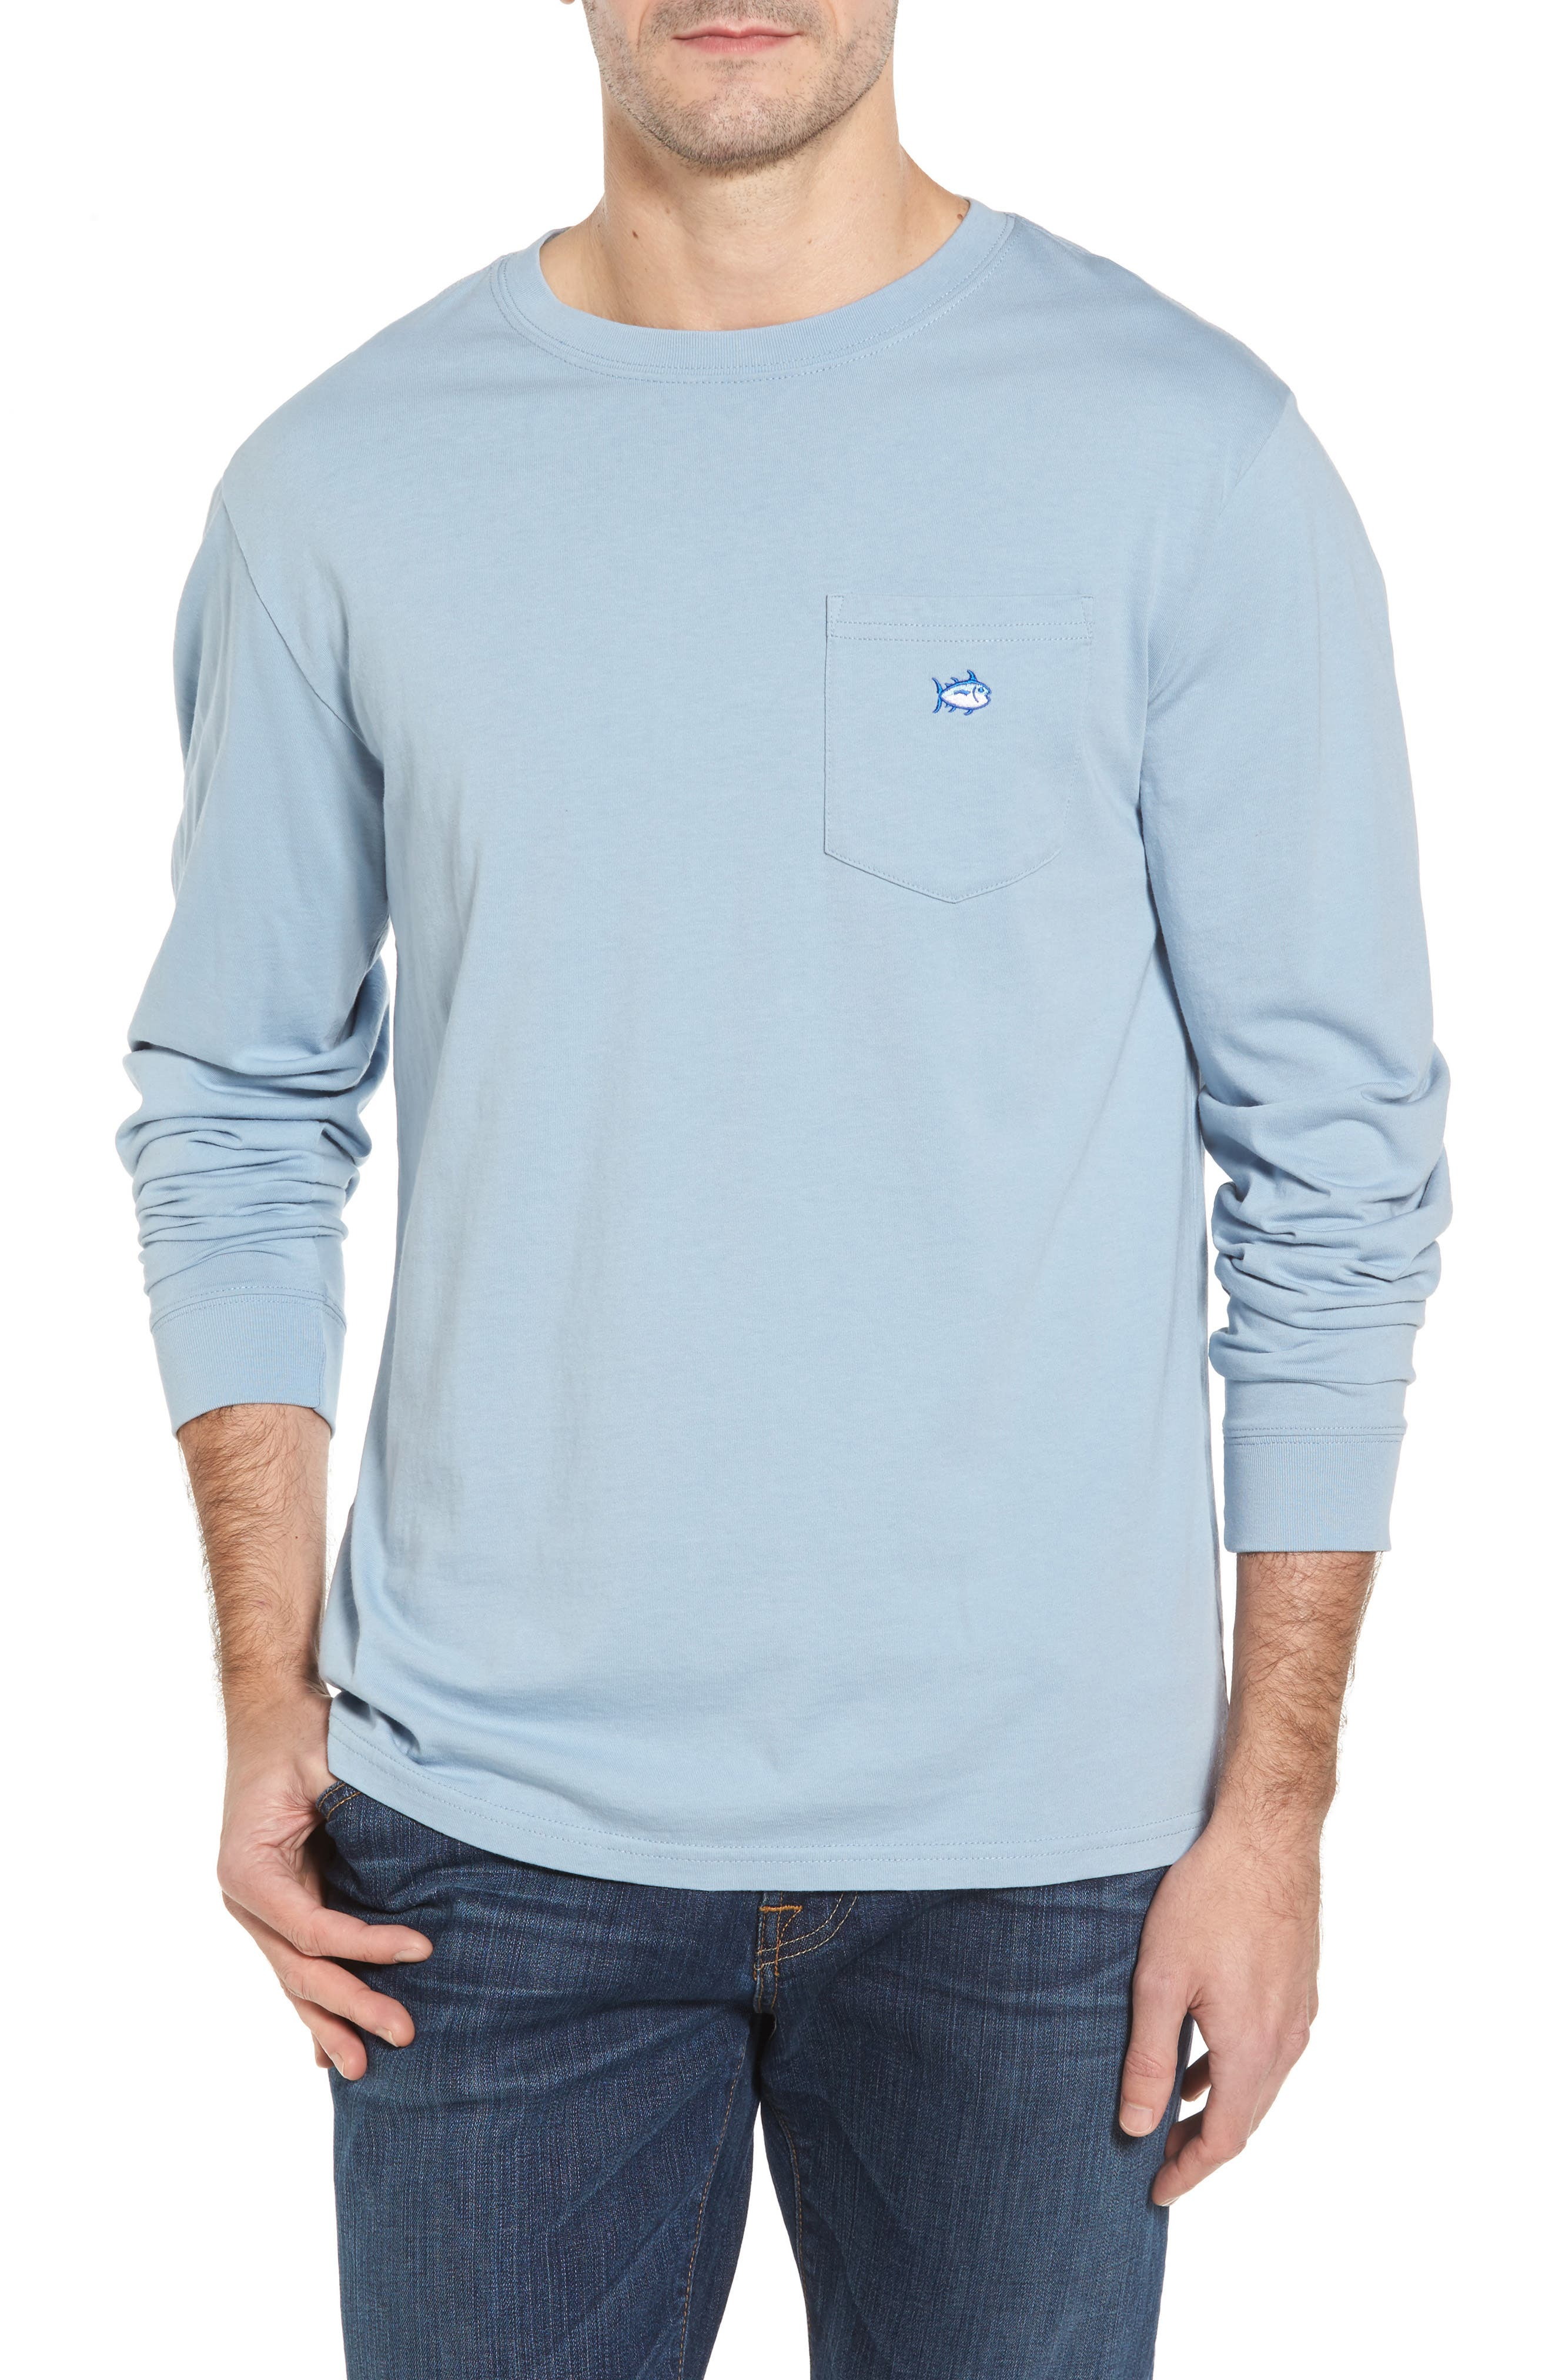 Southern Tide Embroidered Long Sleeve T-Shirt